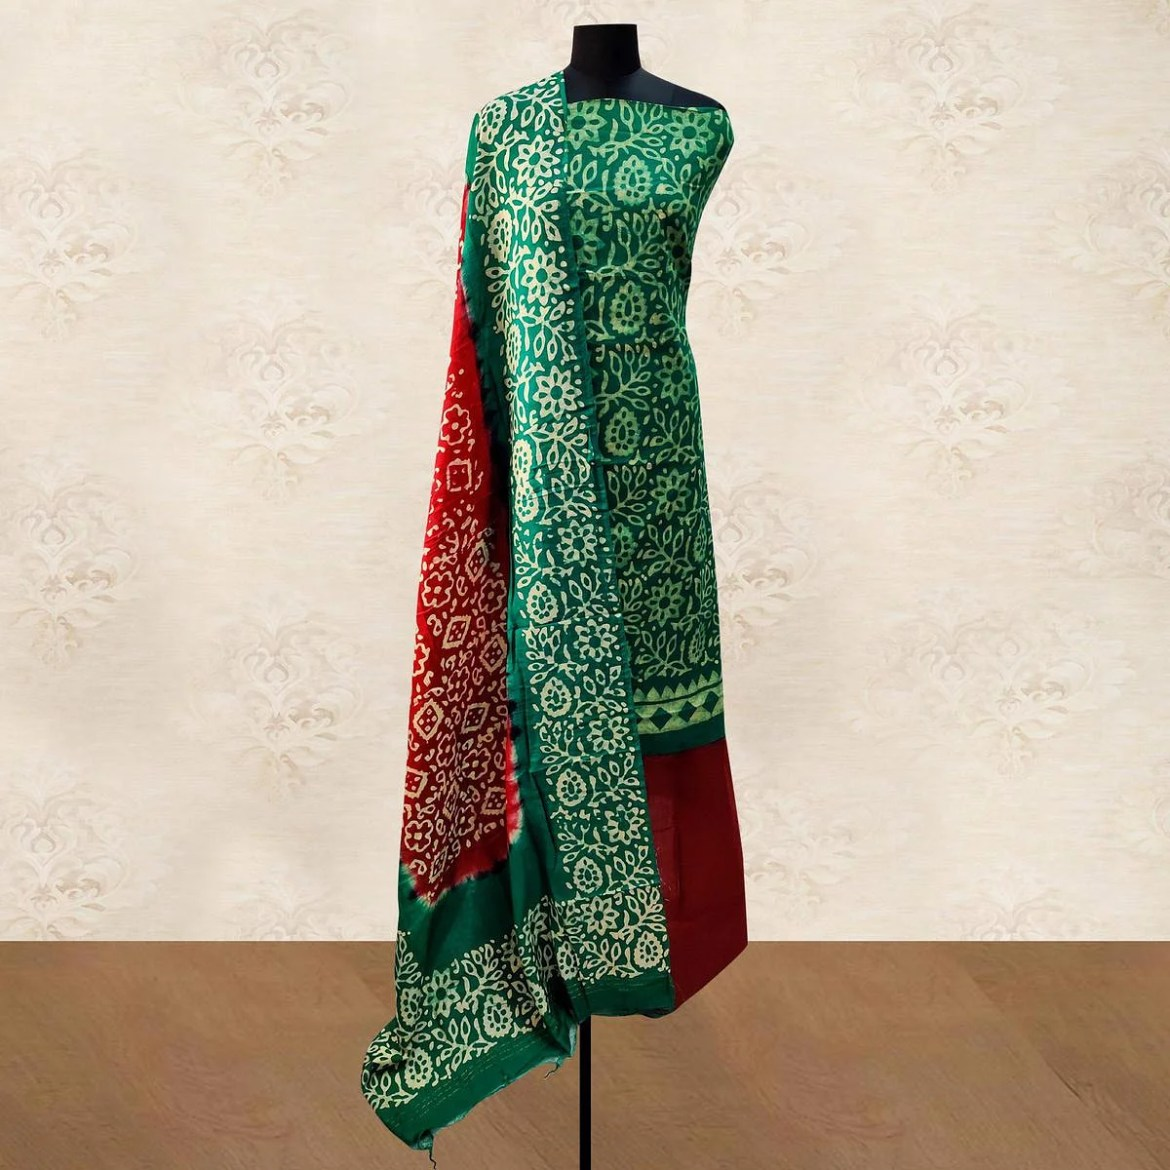 IRIS - Green Colored Casual Hand Wax Batik Printed Cotton Dress Material